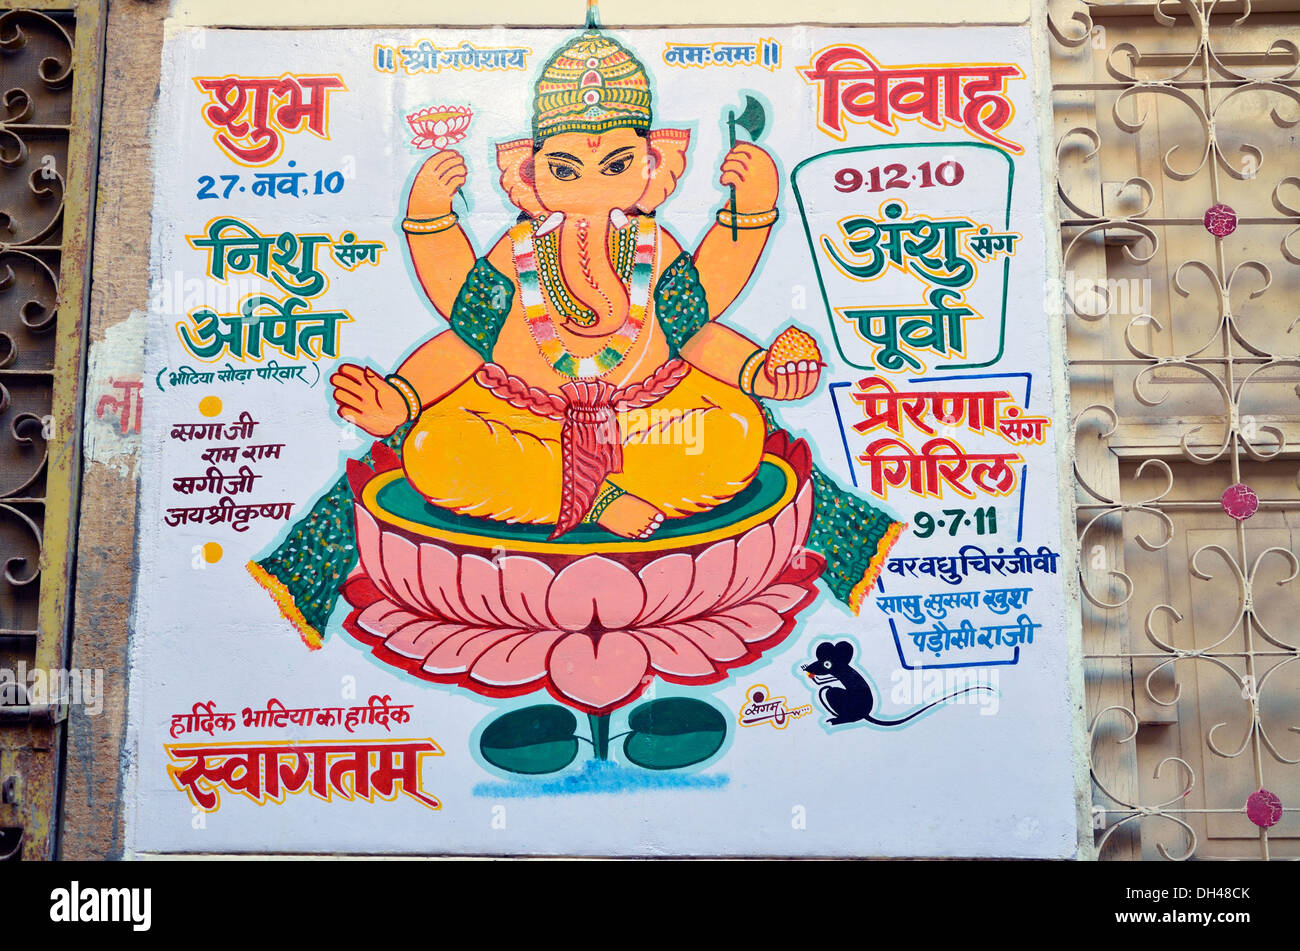 Painting Of Ganesh Ji On The Wall Rajasthan India Asia Stock Photo